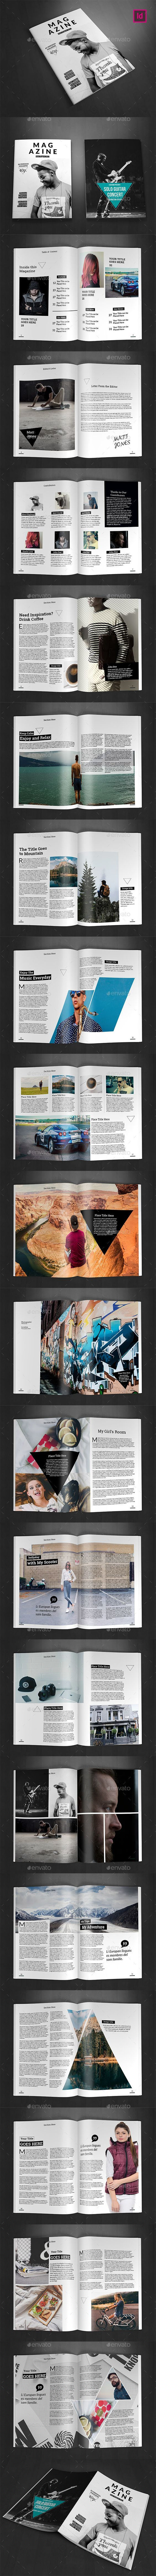 A4 Magazine Template Vol.23 — InDesign INDD #nature magazine #minimal design • Download ➝ https://graphicriver.net/item/a4-magazine-template-vol23/18956408?ref=pxcr: